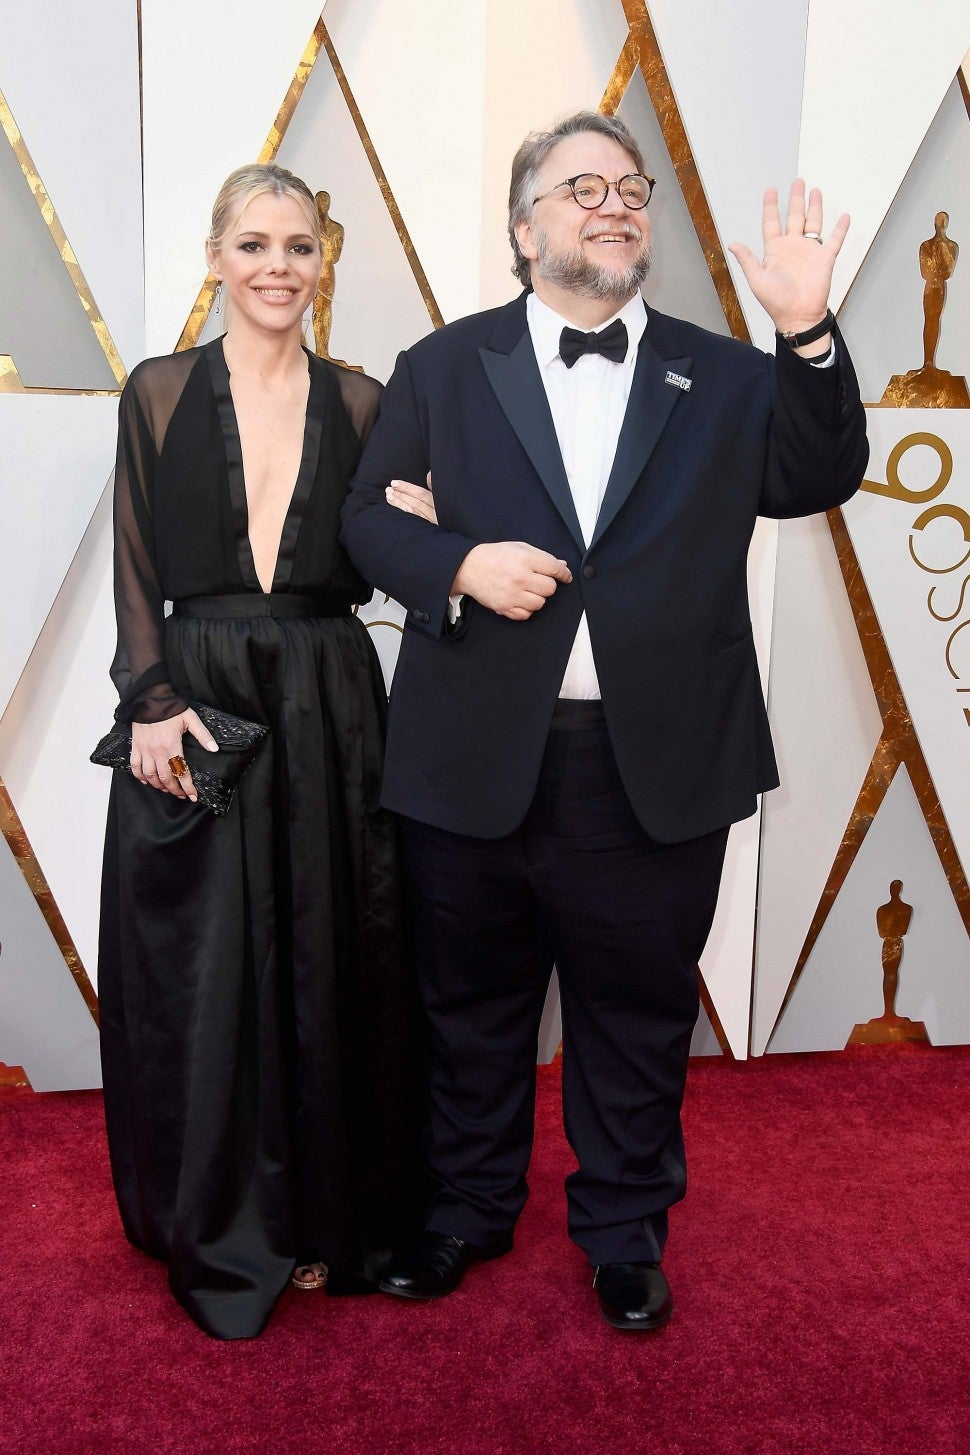 Kim Morgan and Guillermo del Toro at the 90th Annual Academy Awards